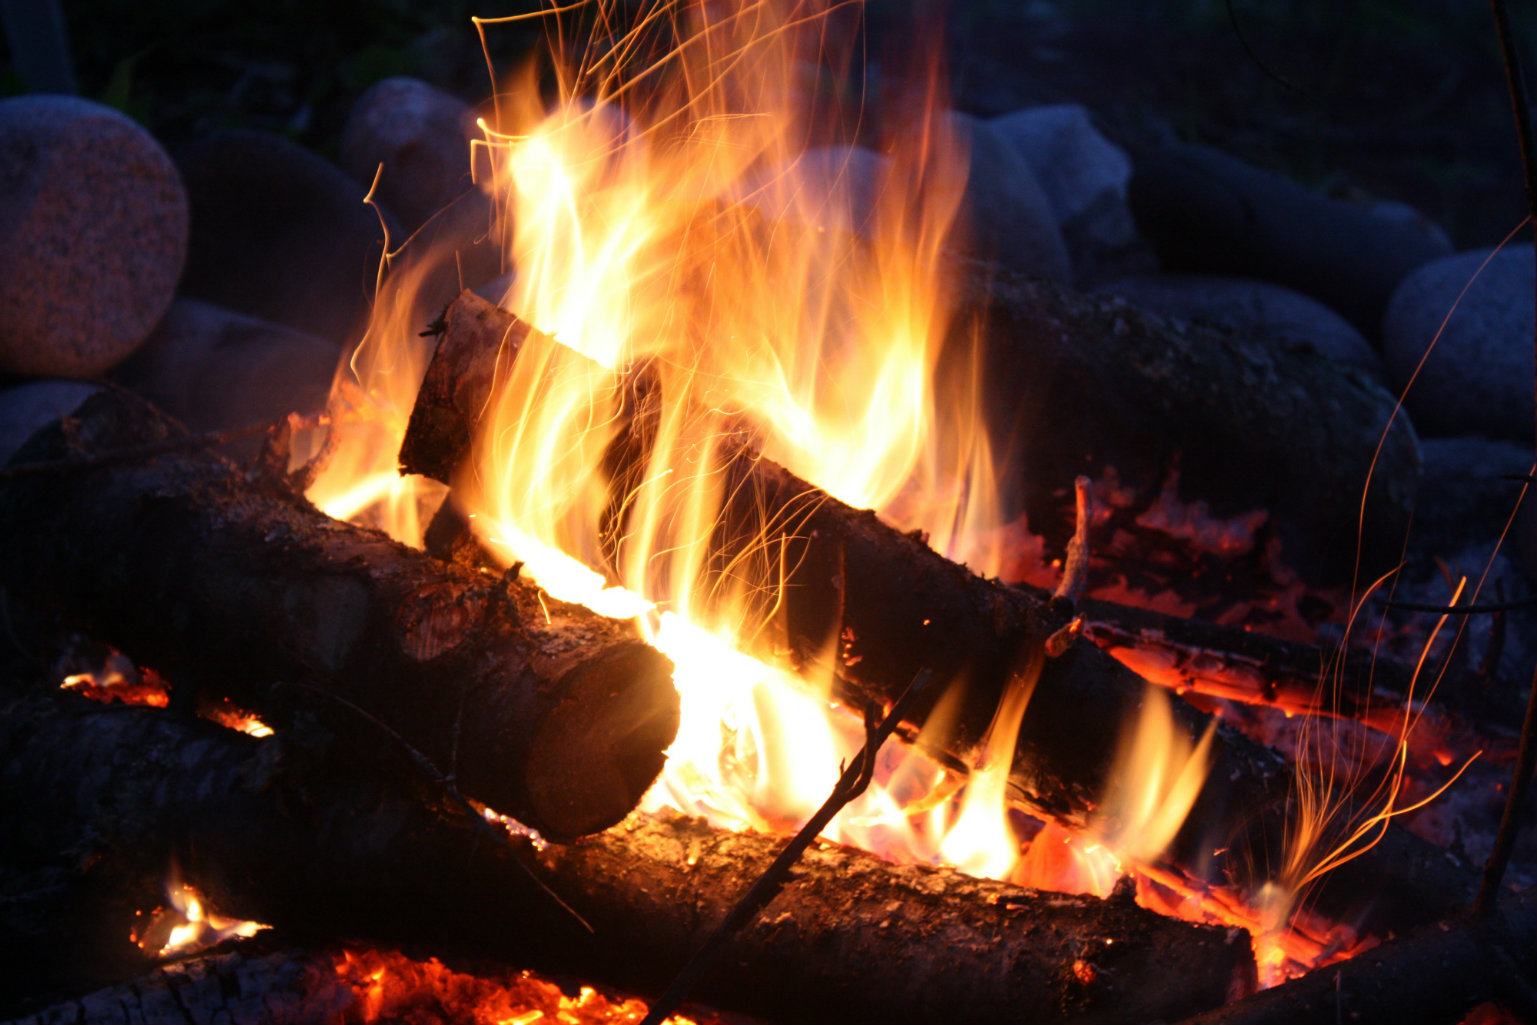 How to build the perfect fire, according to a Duke University engineer